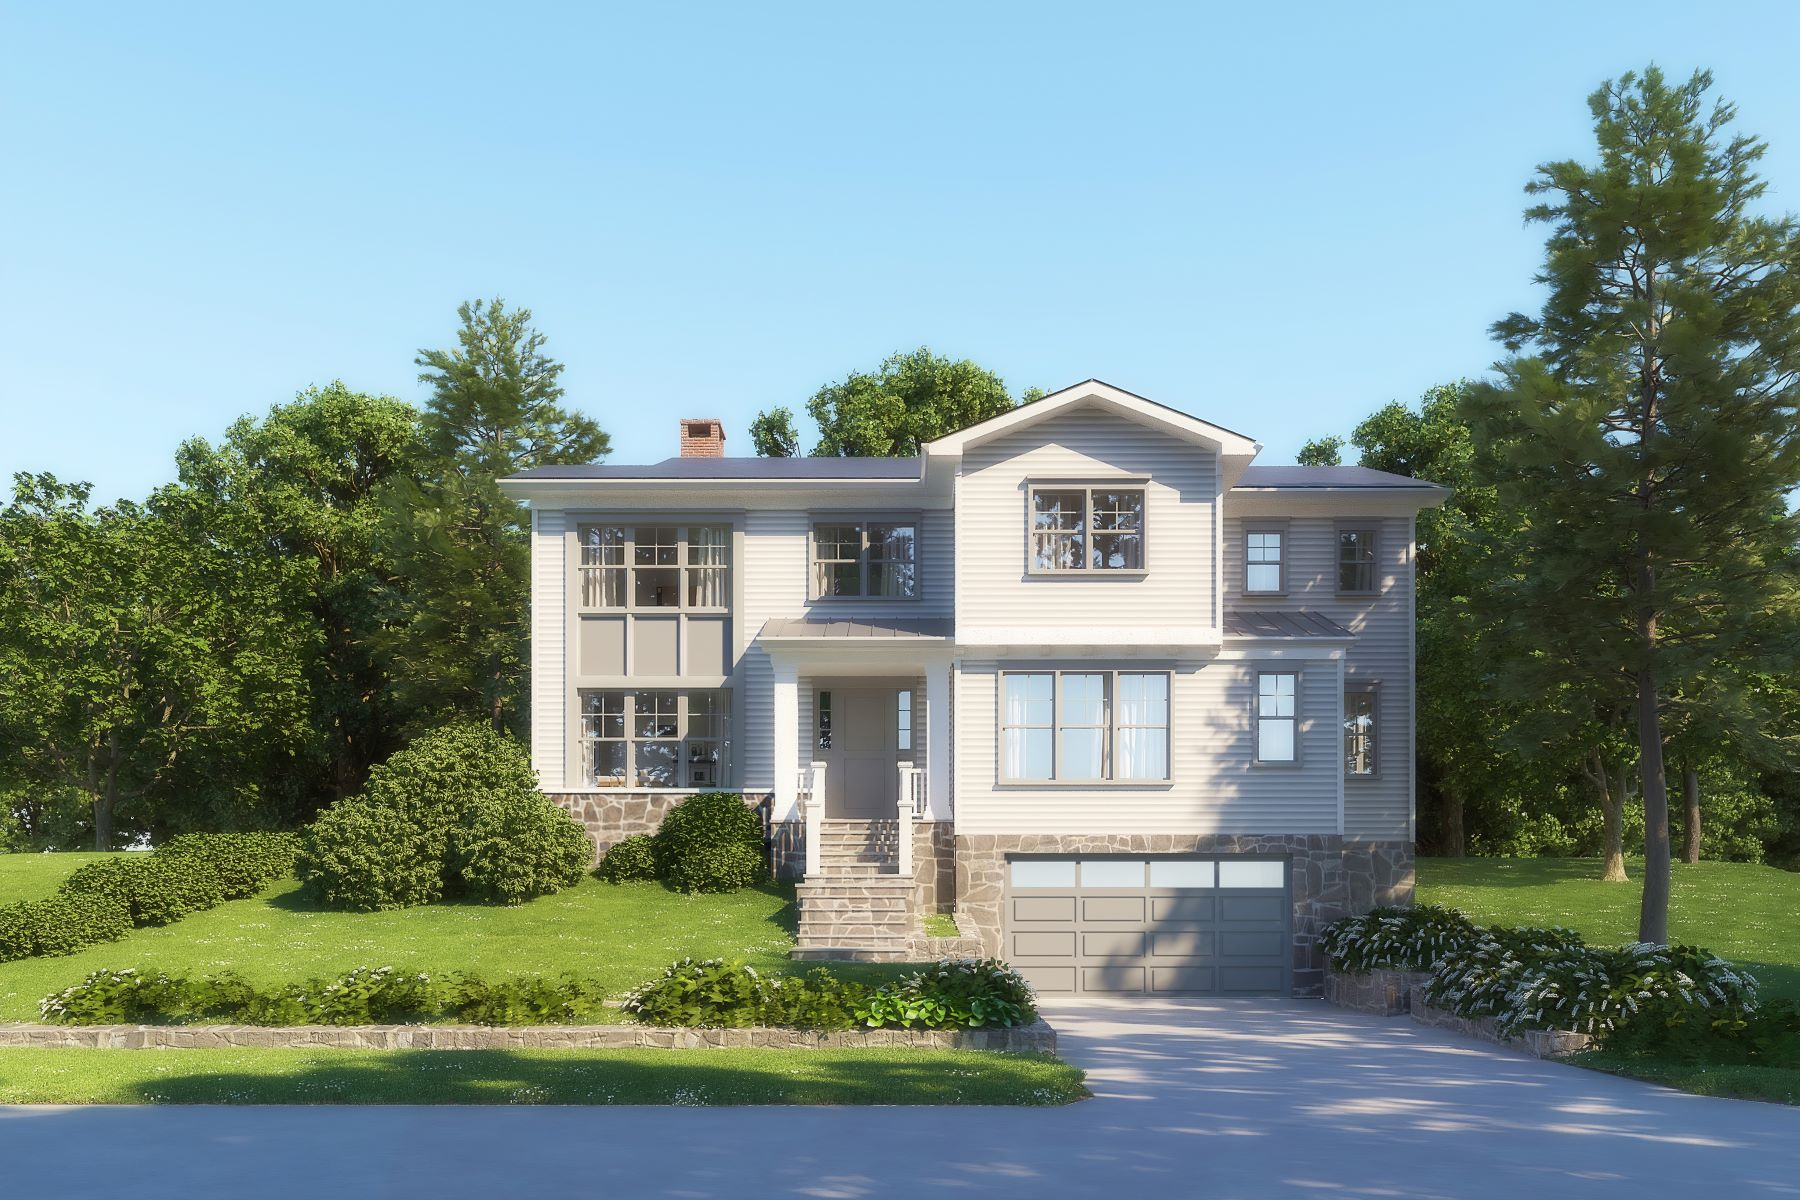 Single Family Homes for Sale at 85 Colonial Avenue Larchmont, New York 10538 United States